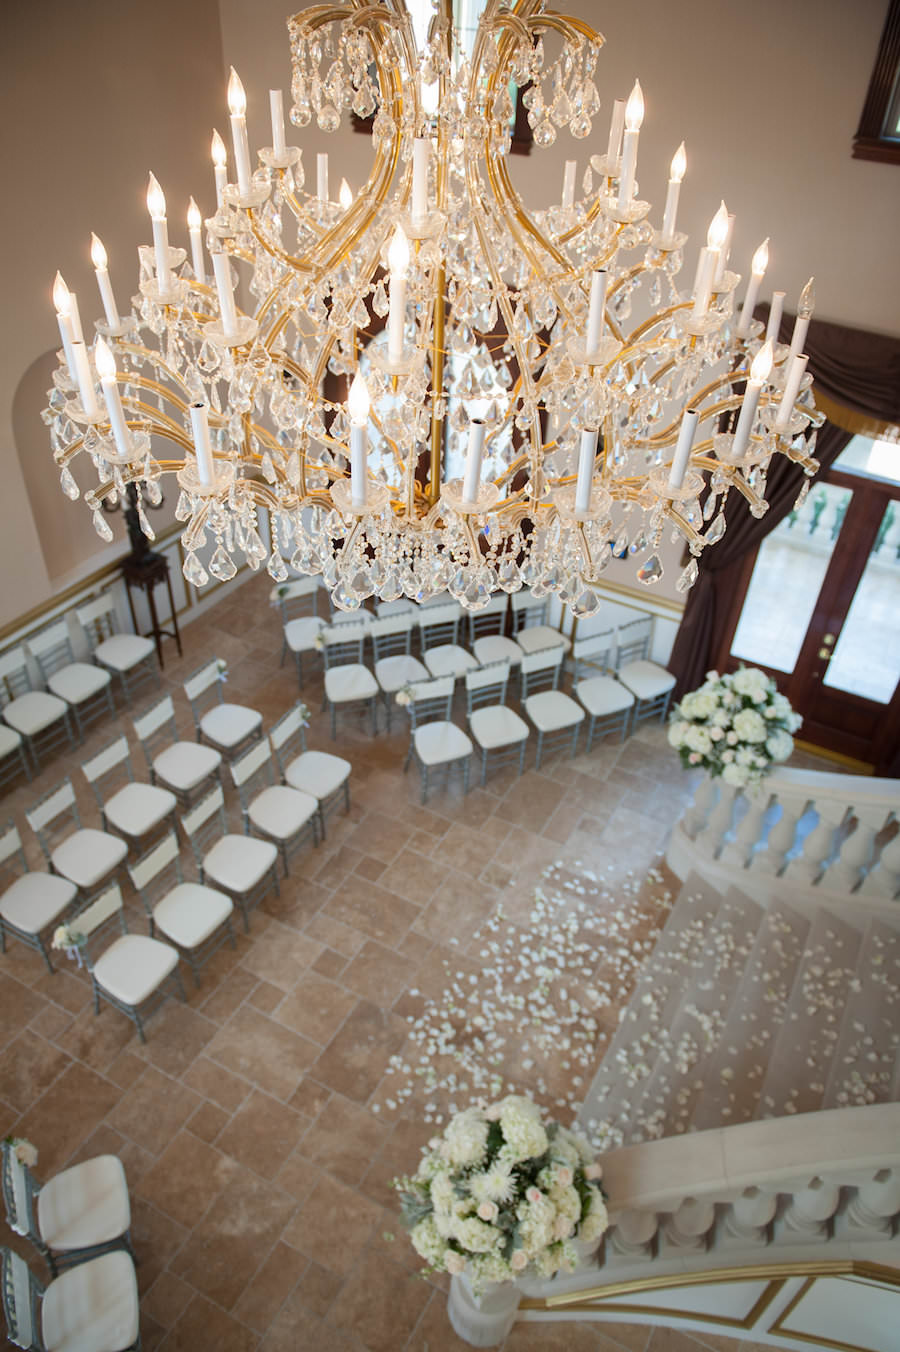 Indoor, Private Residence Wedding Ceremony with Silver Chiavari Chairs and Ivory Flower Petals and Elegant Chandelier